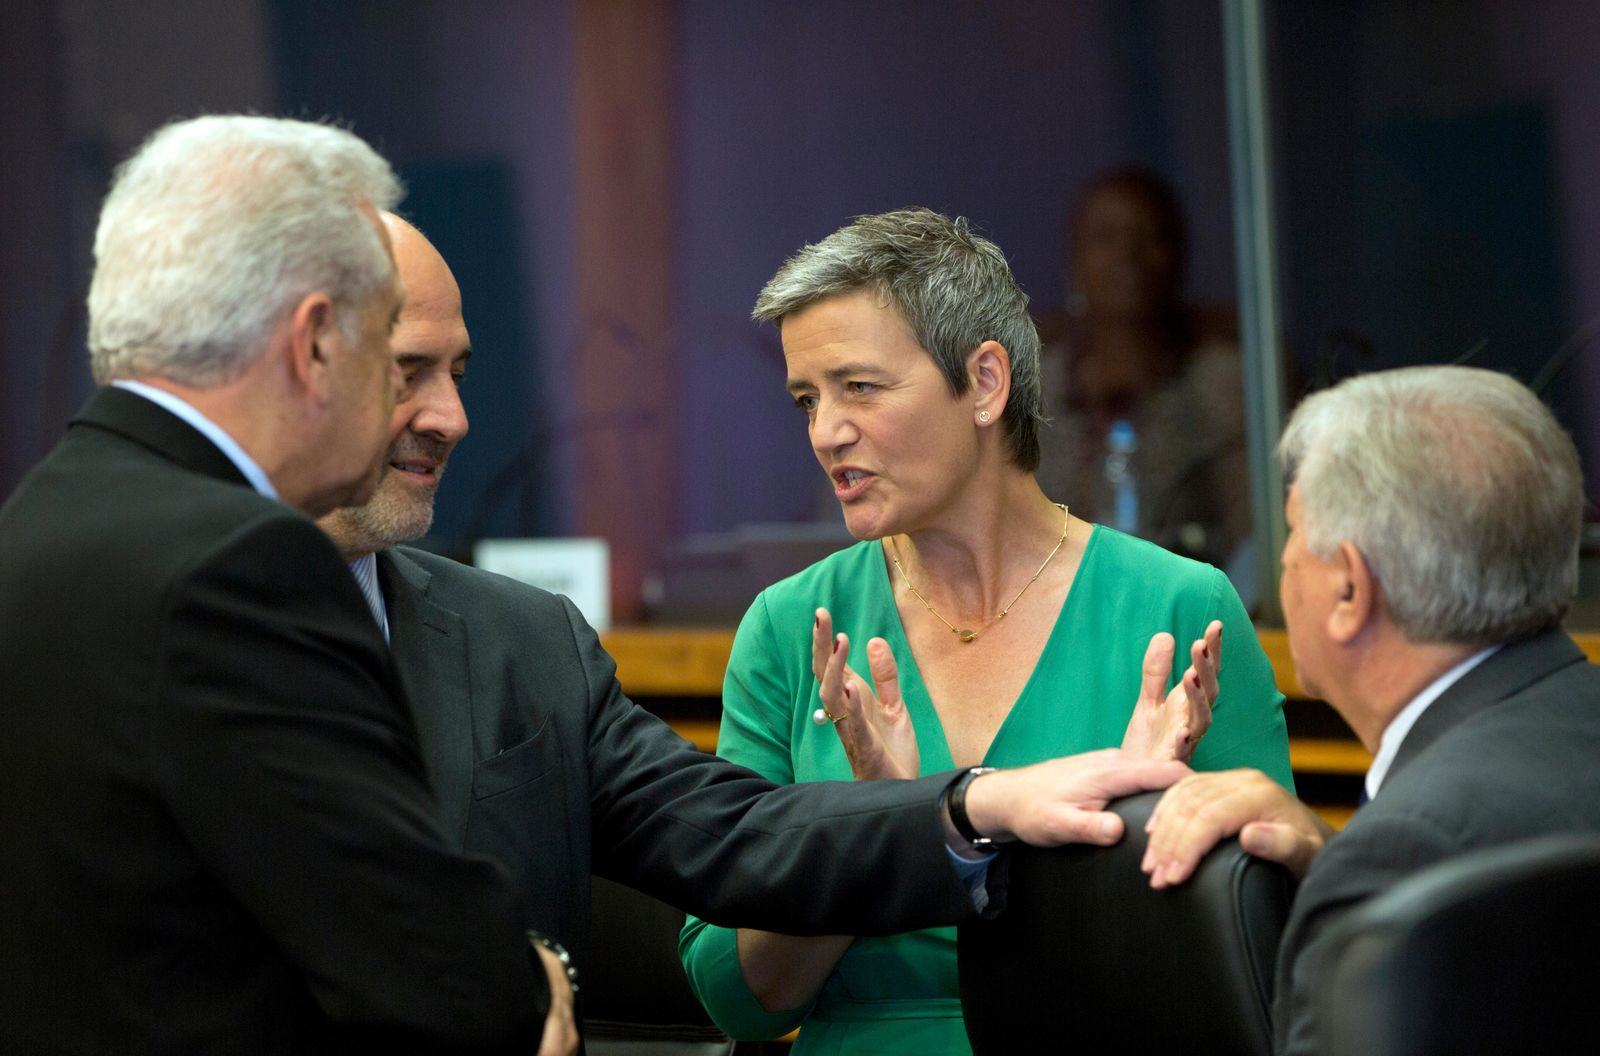 European Commissioner for Competition Margrethe Vestager, center, speaks with European Commissioner for Economic and Financial Affairs Pierre Moscovici, second left, and European Commissioner for Migration and Home Affairs Dimitris Avramopoulos, left, during the weekly college meeting at EU headquarters in Brussels, Wednesday, July 3, 2019. (AP Photo/Virginia Mayo)